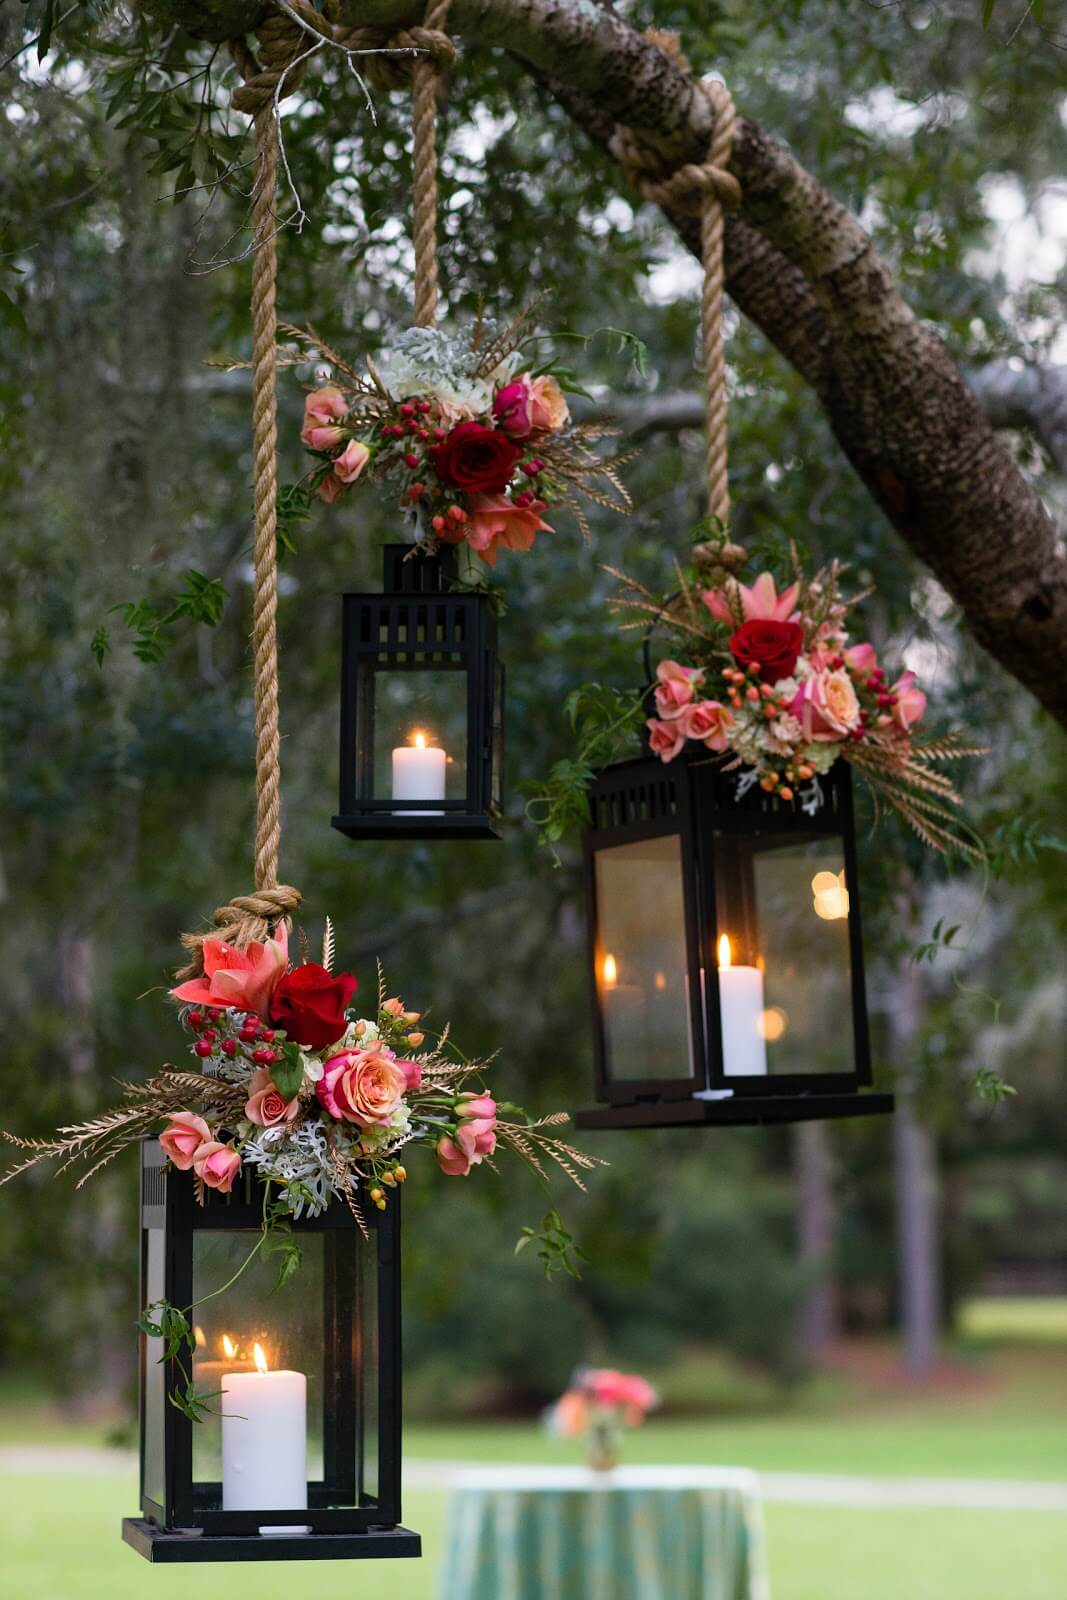 Lit Roses on the Ropes Lantern